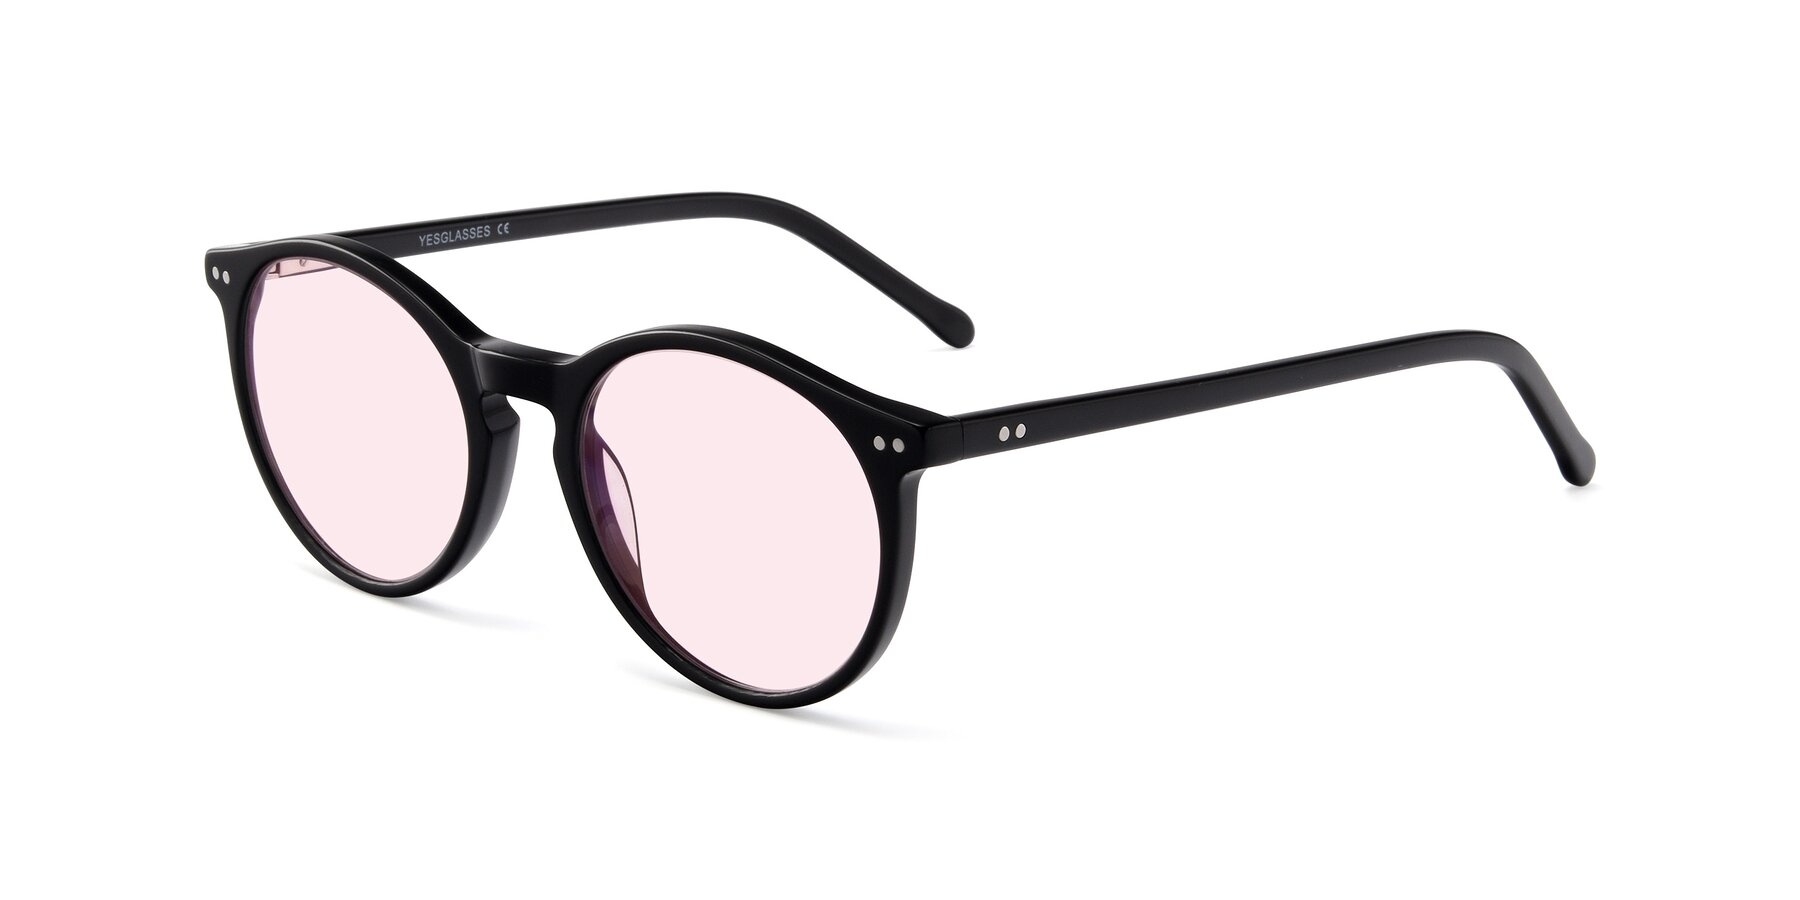 Angle of JS9026A in Black with Light Pink Tinted Lenses